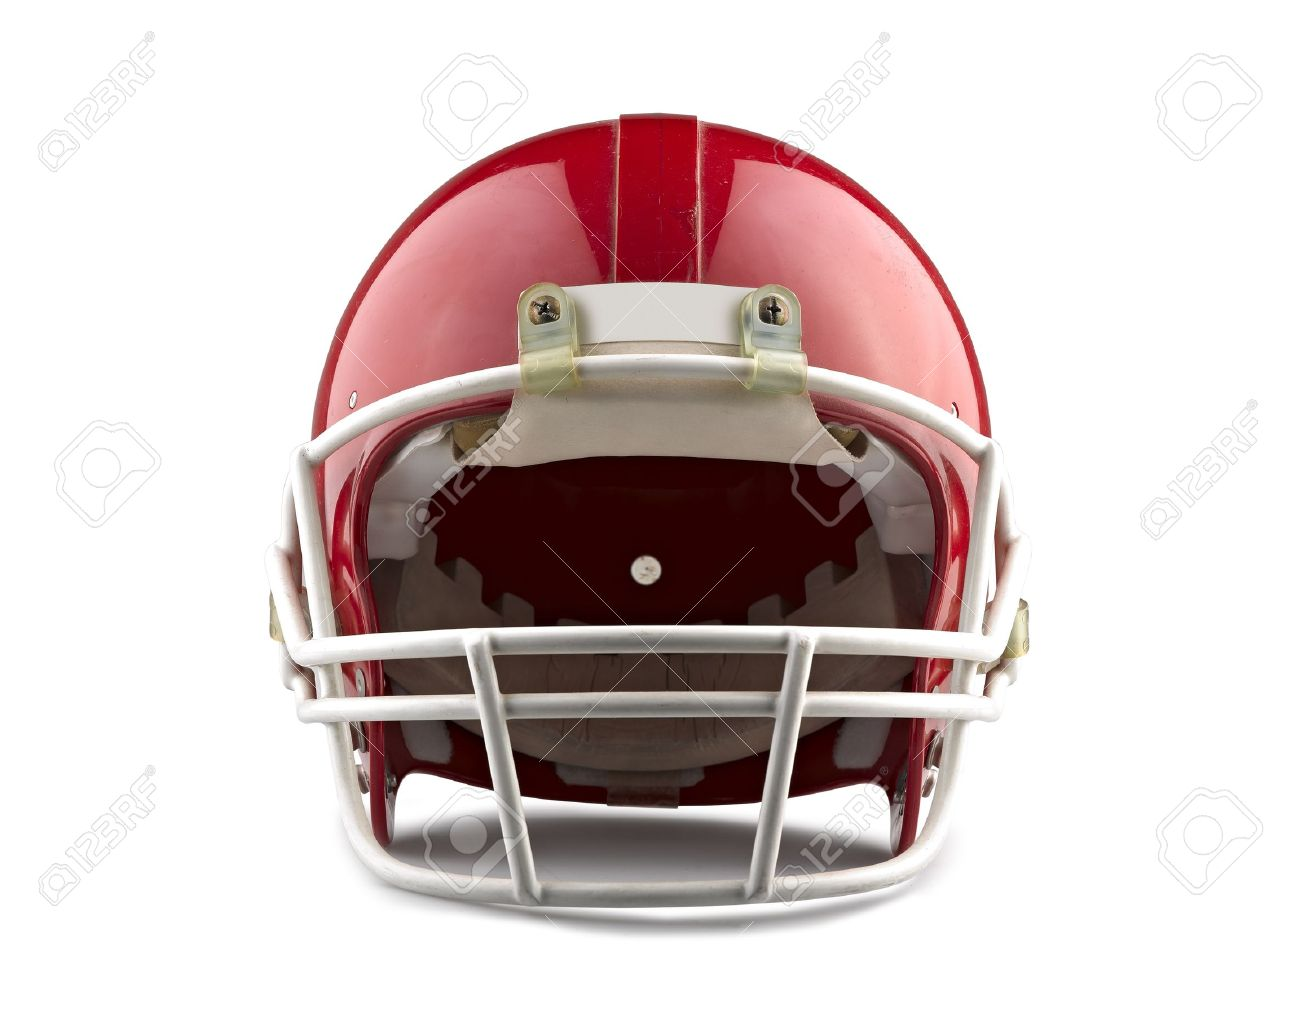 Red American football helmet isolated on a white background with detailed clipping path. Standard-Bild - 17388290